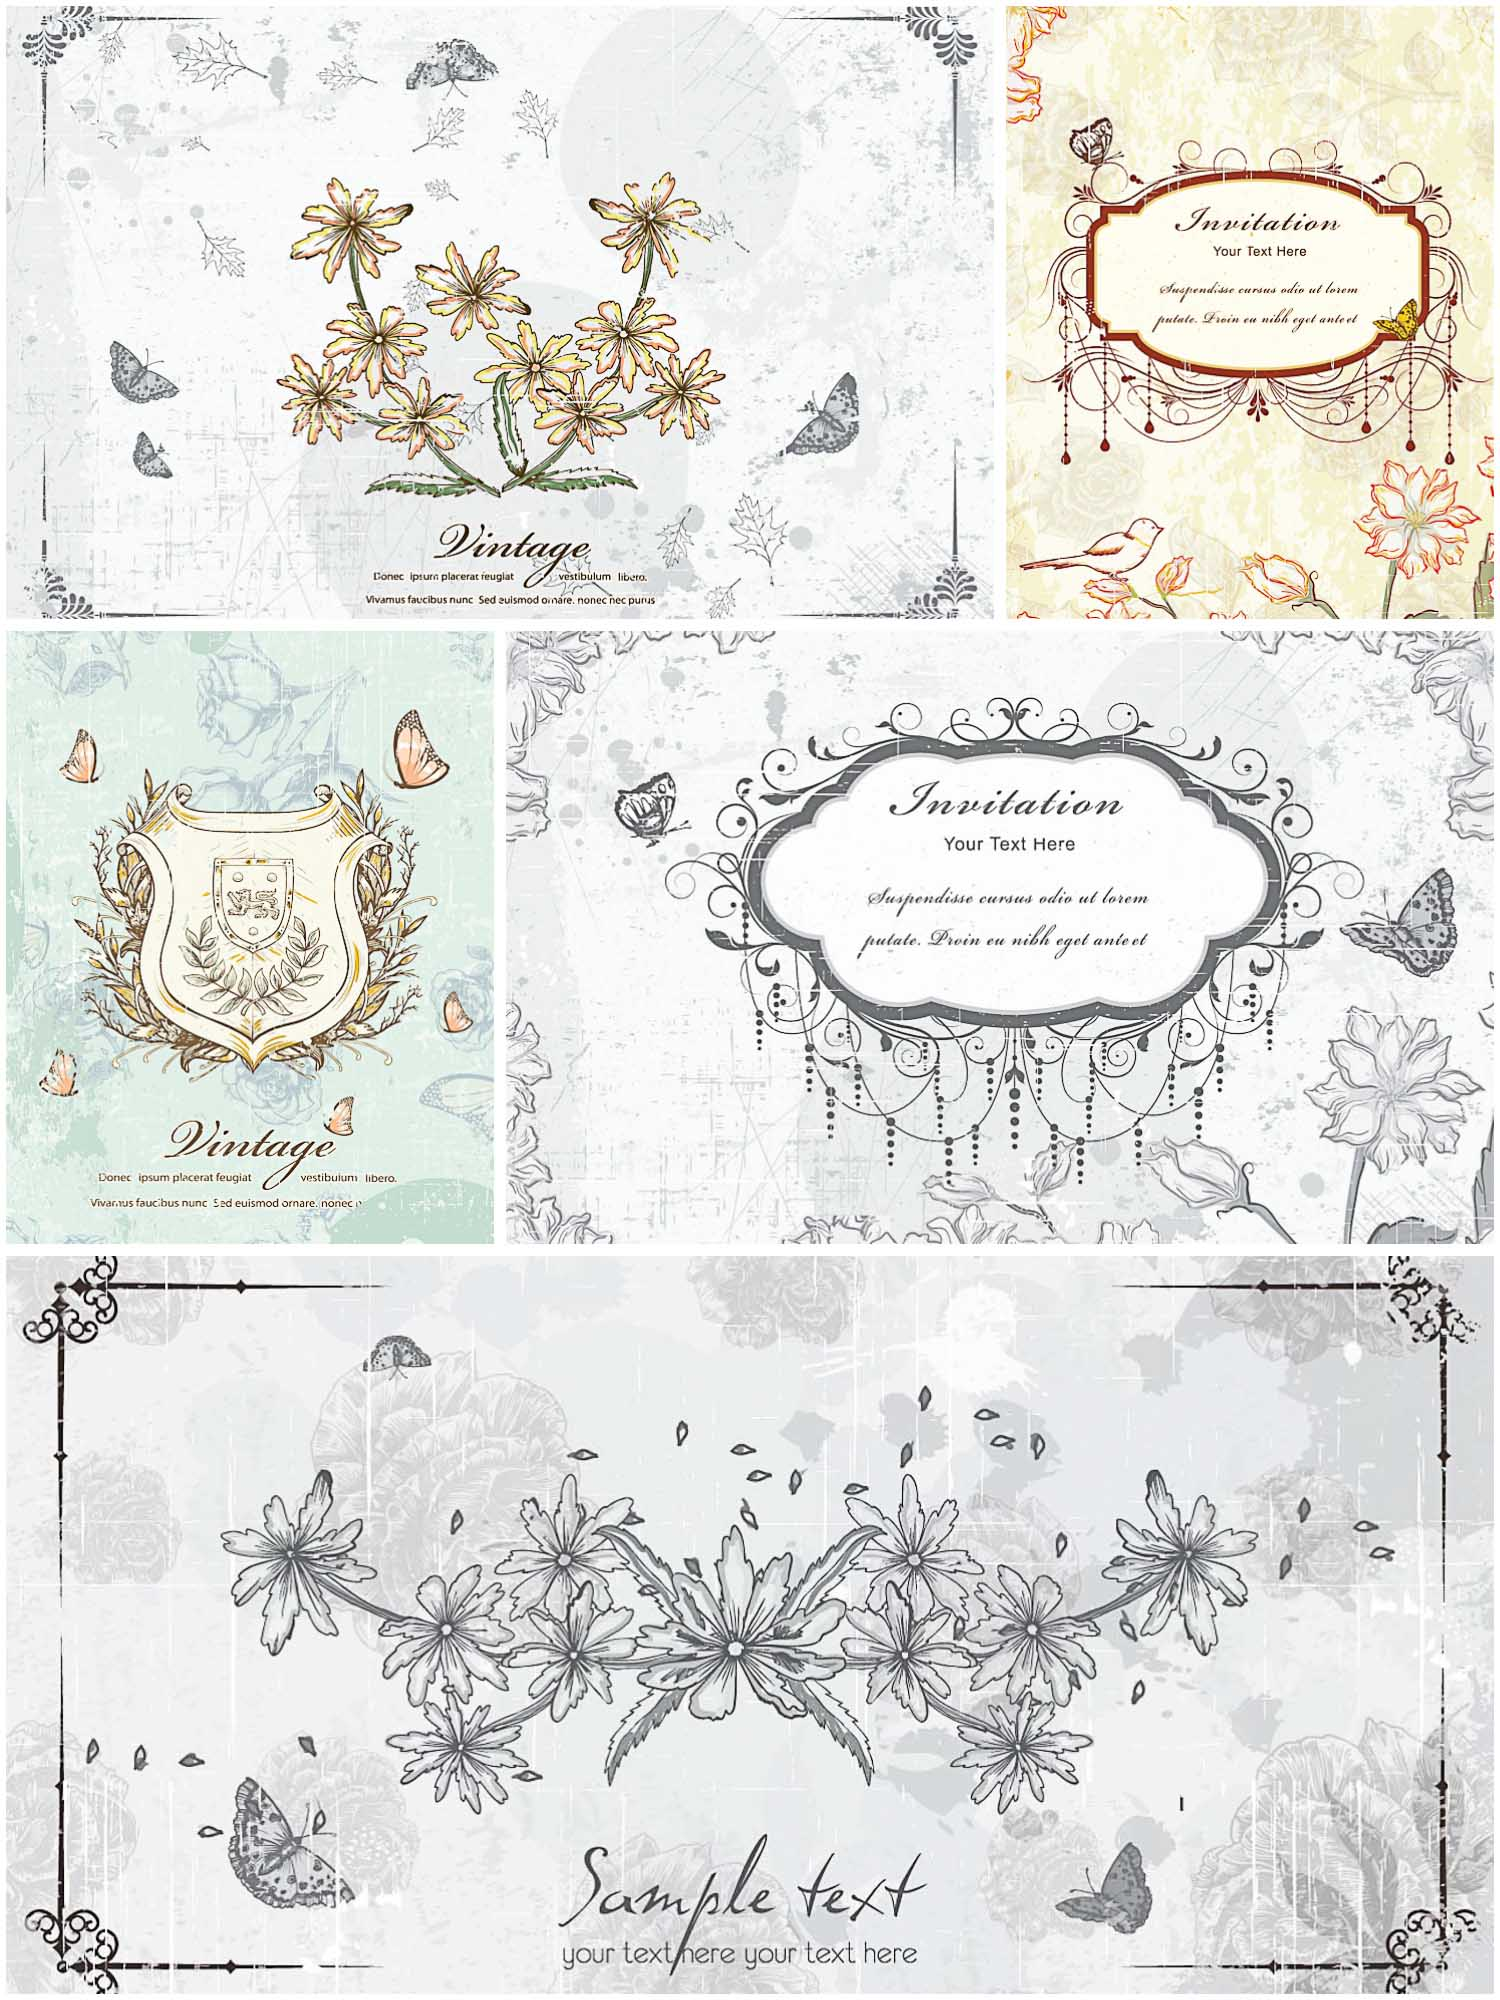 Old floral invitation vector cards free download old floral invitation vector cards stopboris Images